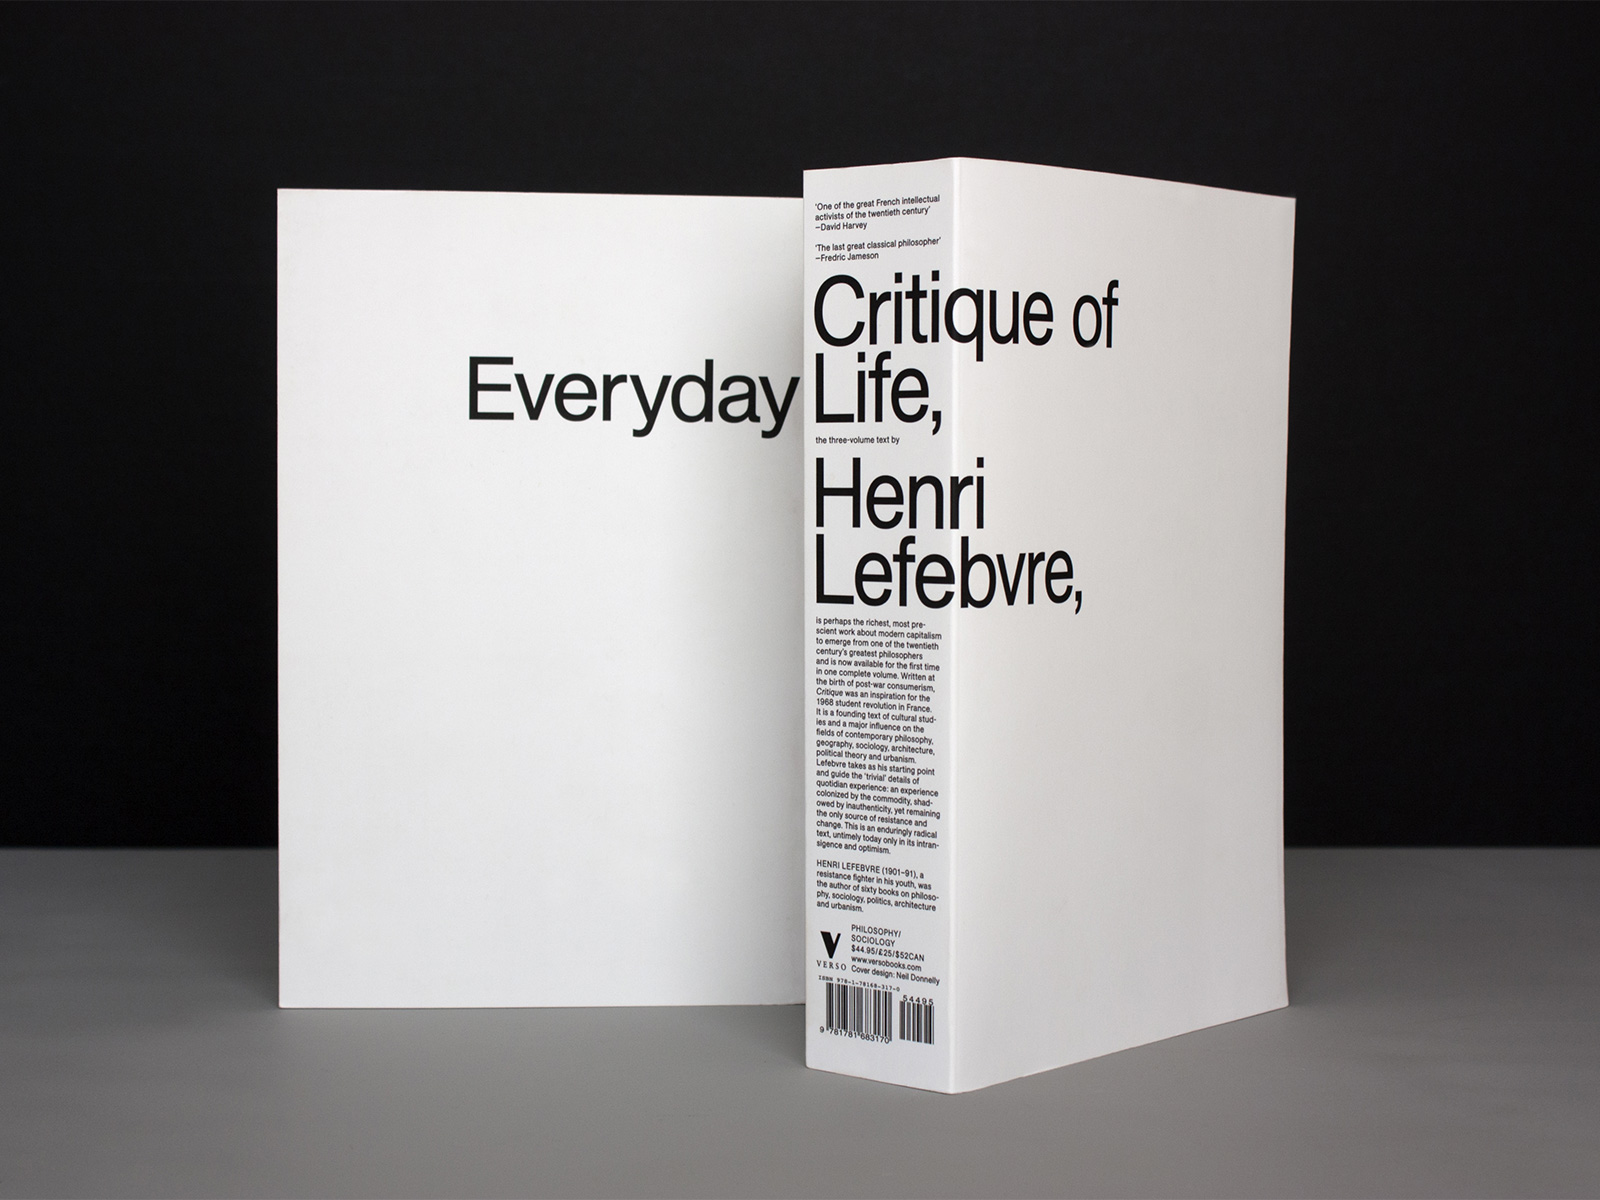 Critique_of_Everyday_Life